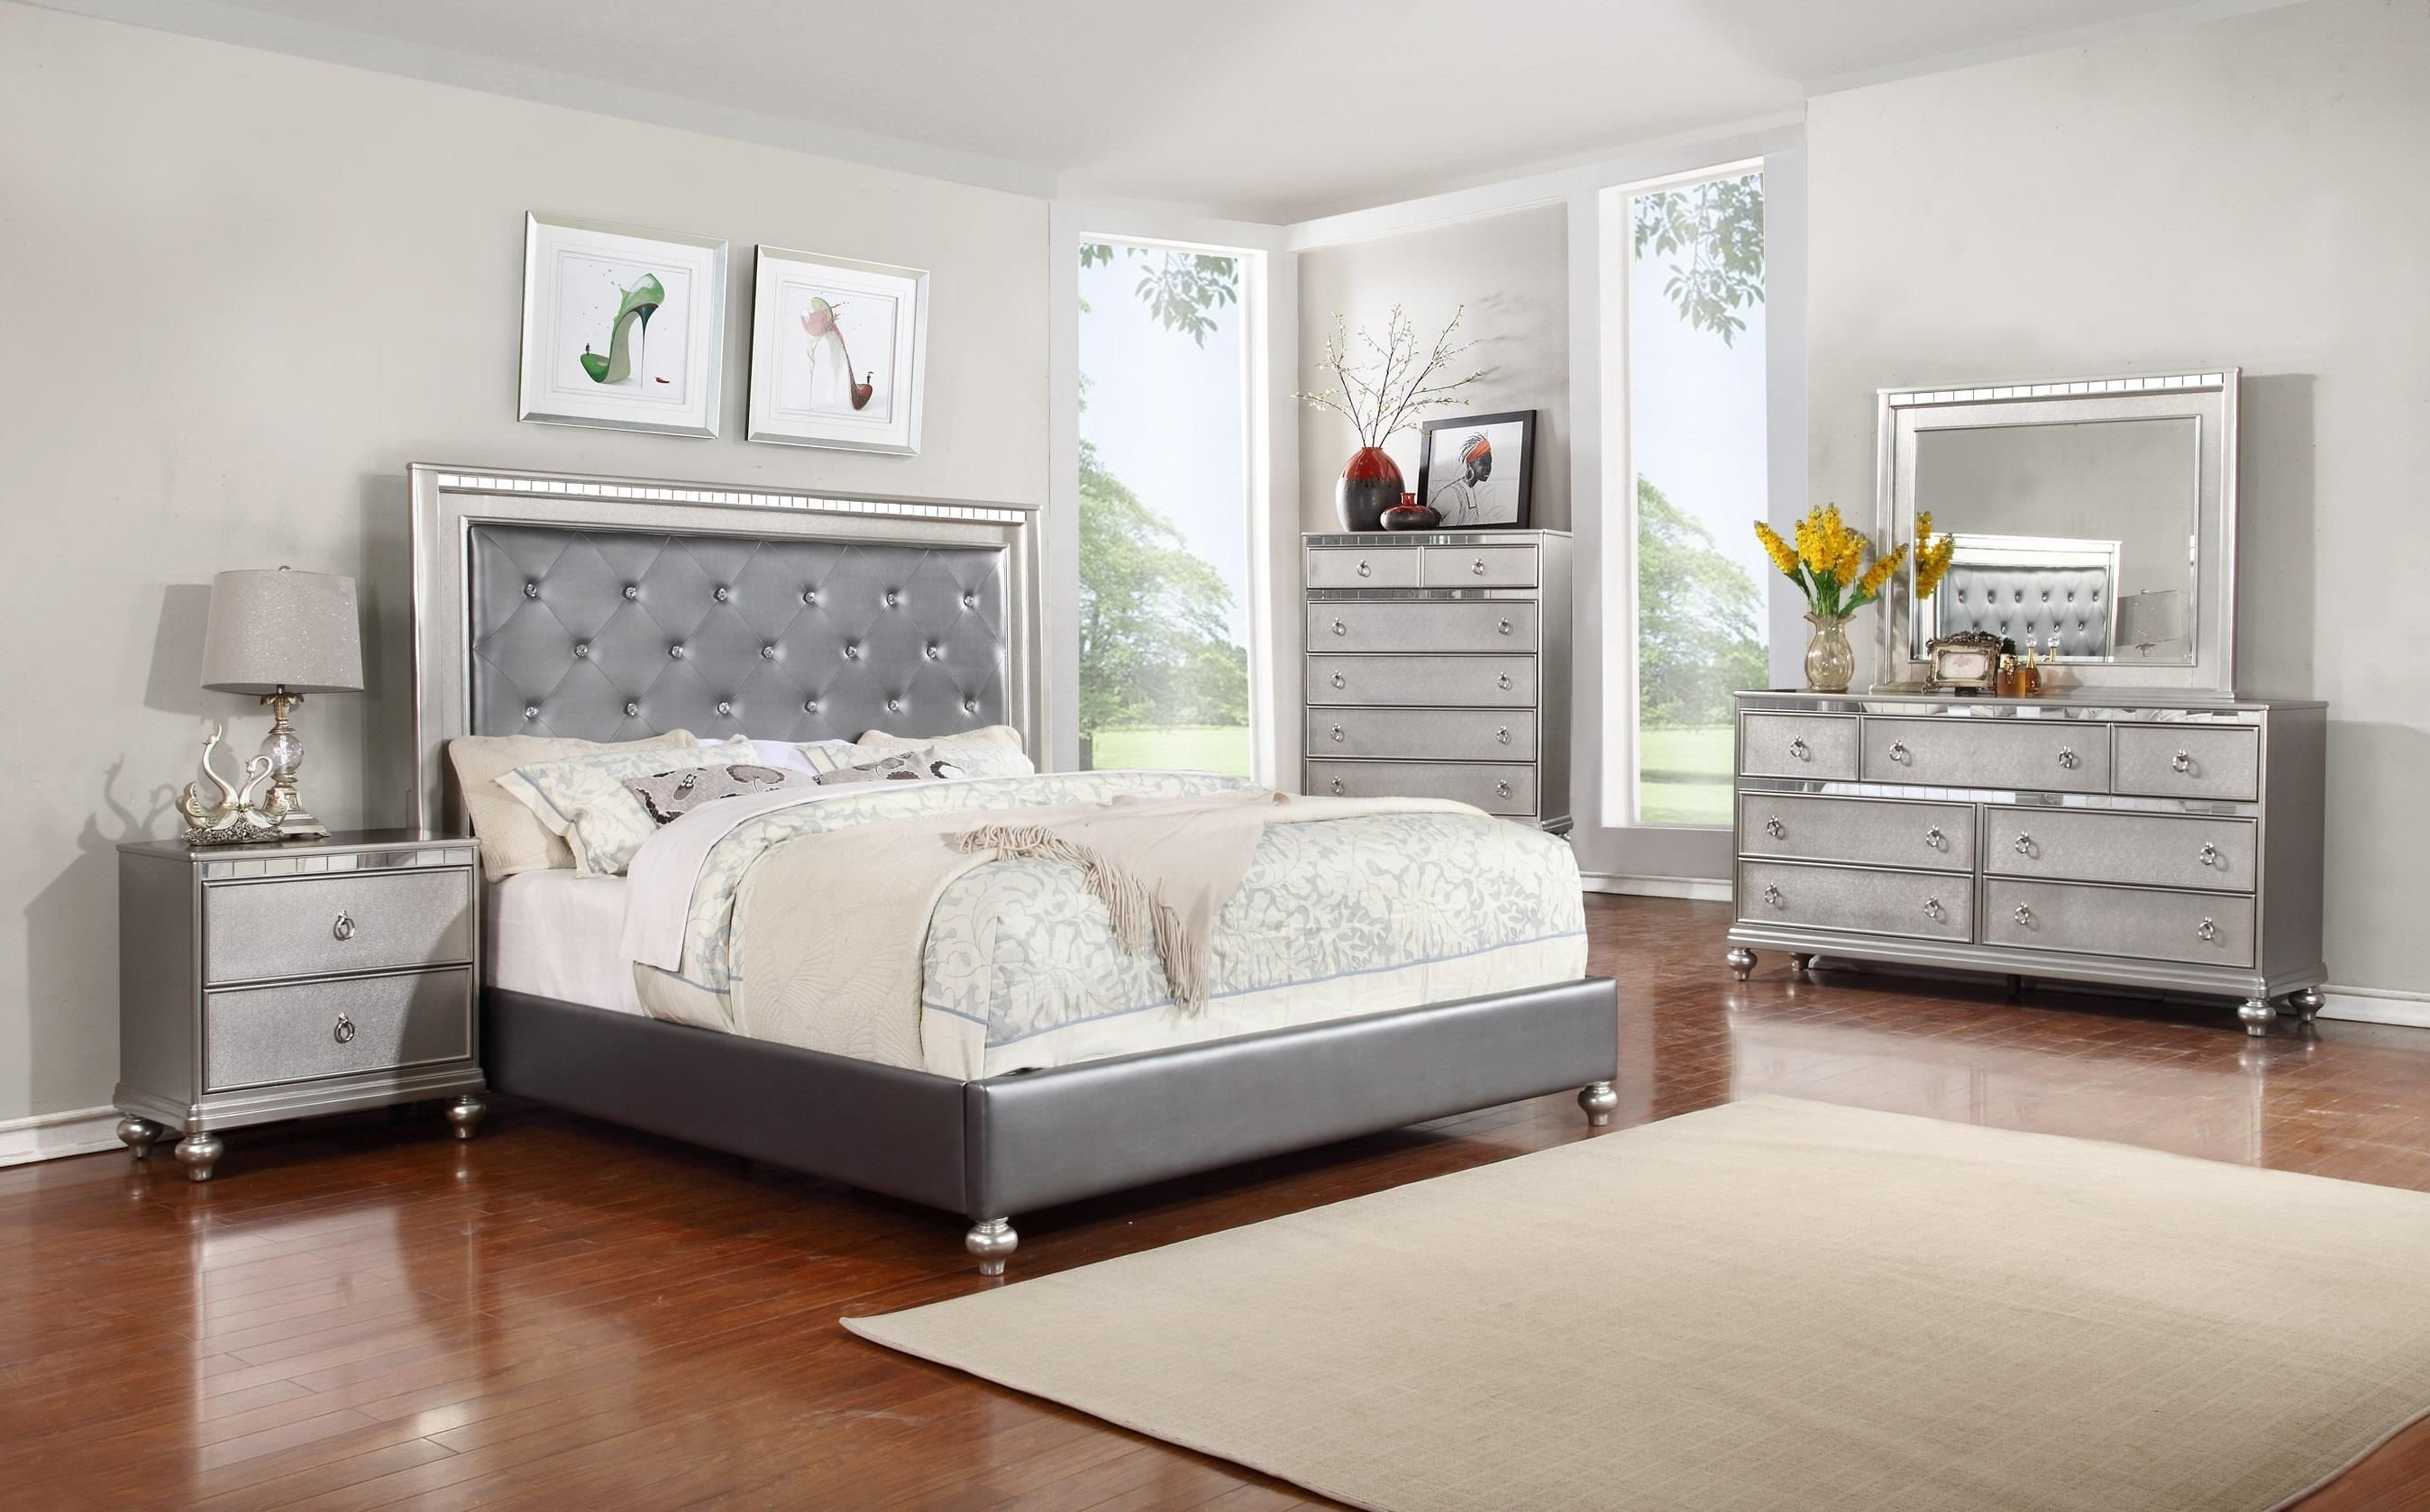 Best Glam 5Pc Queen Bedroom Set By Lifestyle Homedecor Home Decor Pinterest Bedroom Sets With Pictures